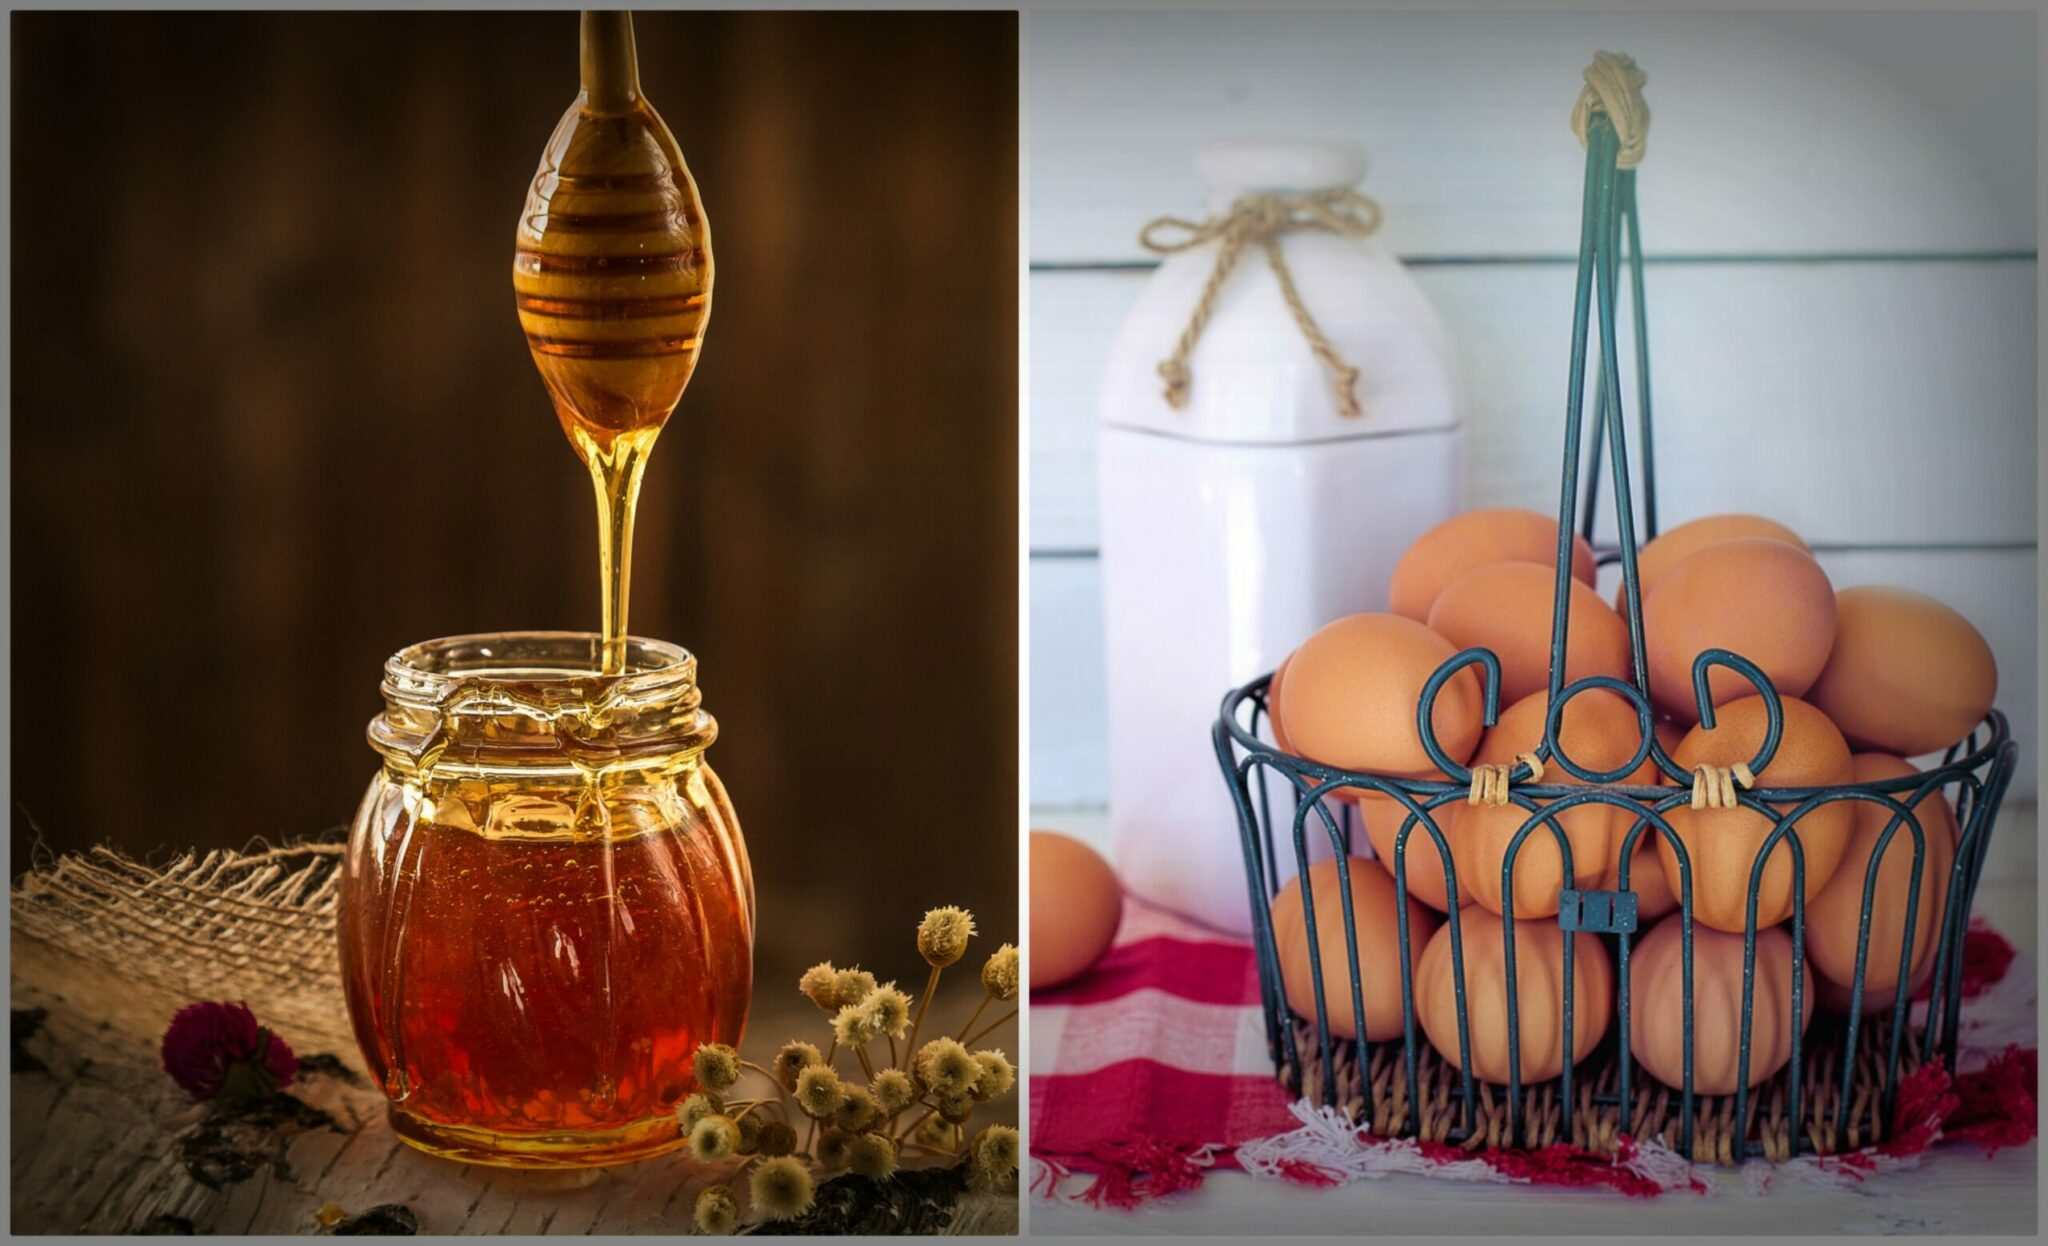 Honey in jar and eggs in metal basket.